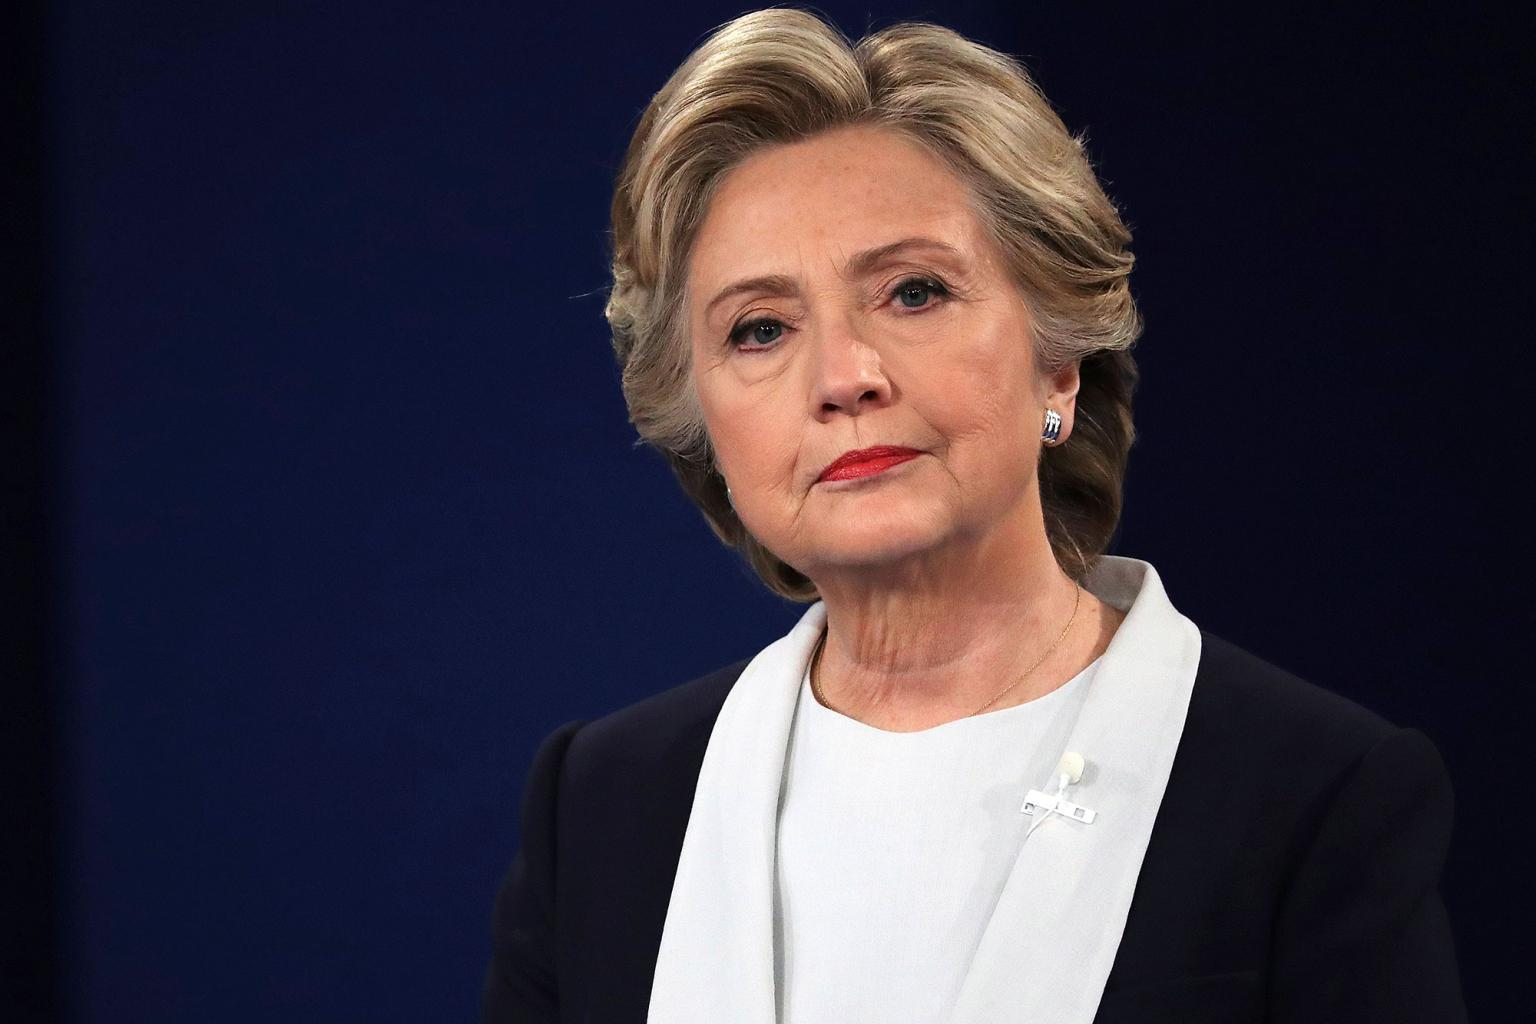 FBI's October Surprise Not (Yet) a Bombshell with Voters: Hillary Clinton Still Leads in Latest Poll